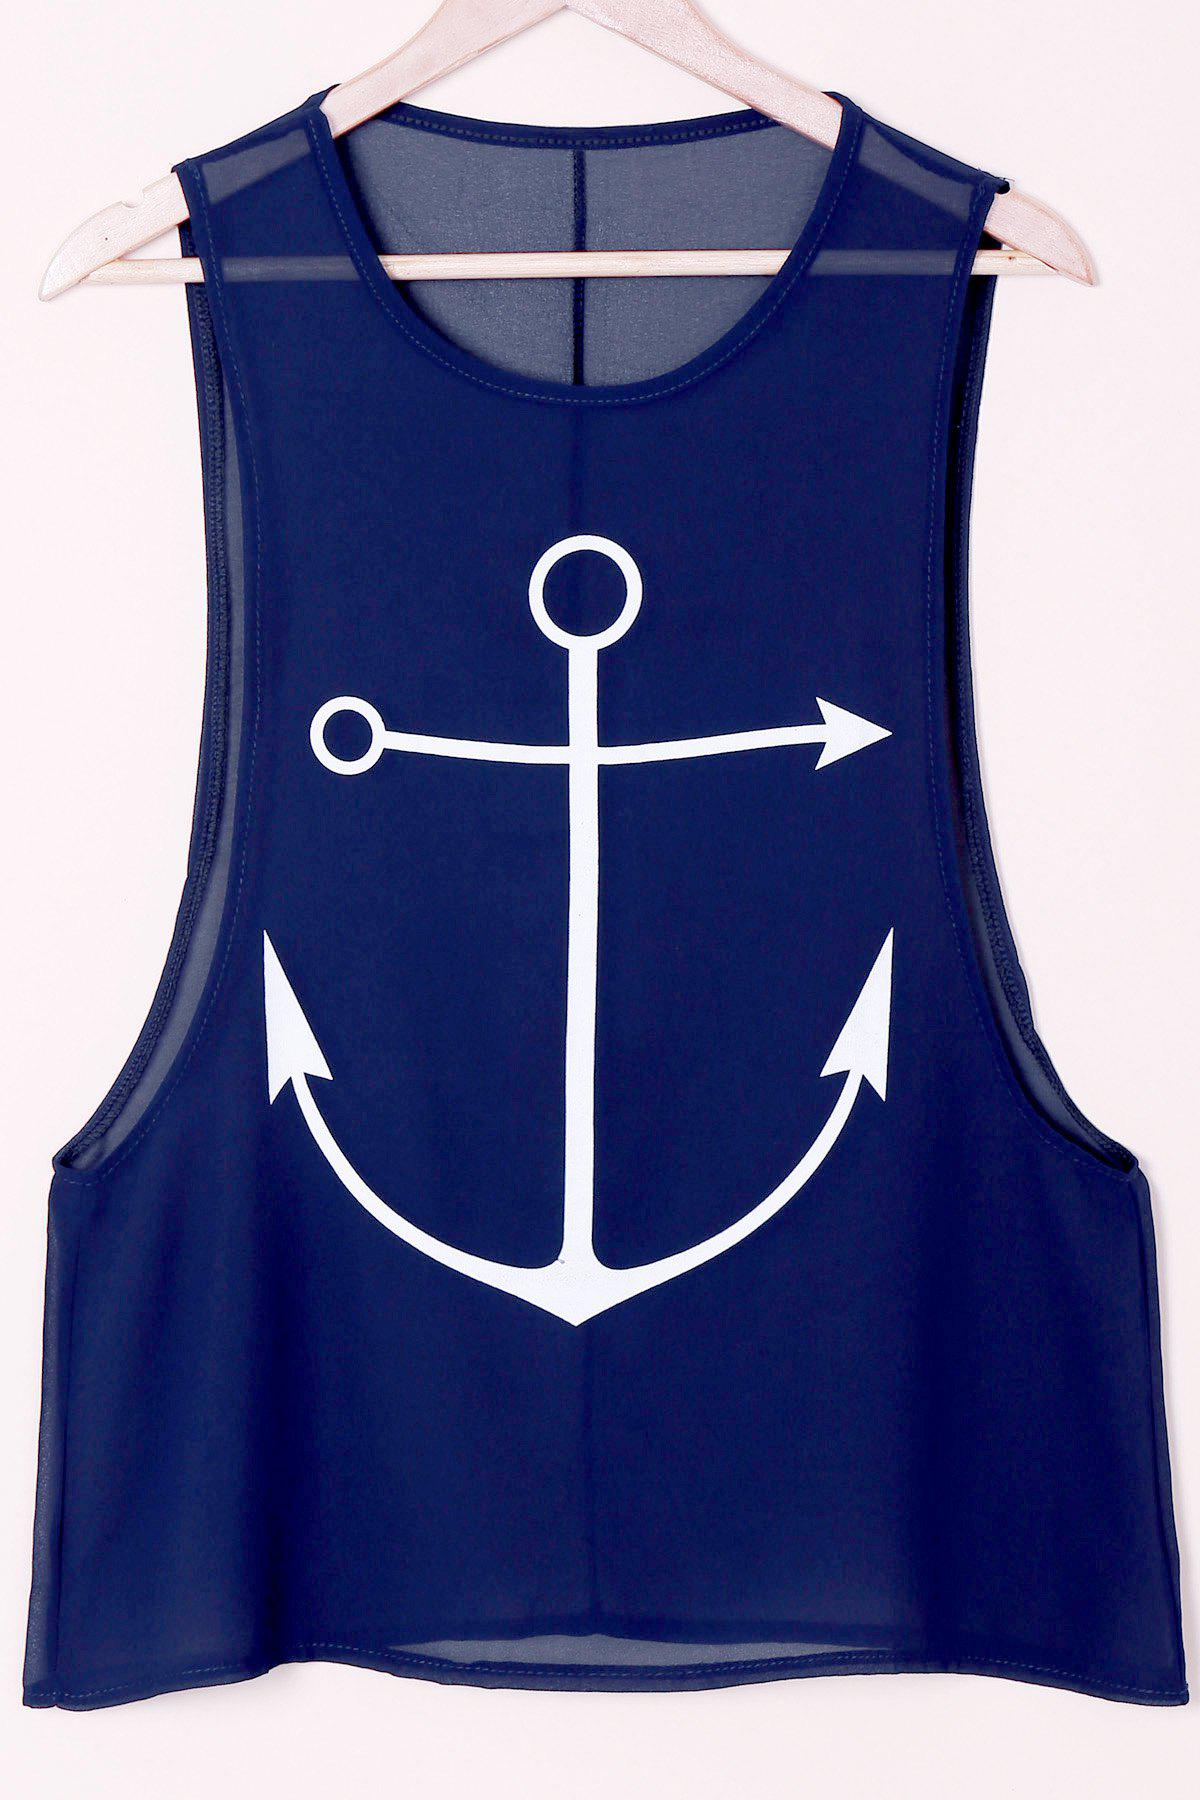 Stylish Sleeveless Round Collar Anchor Print Women's Tank Top - CADETBLUE L